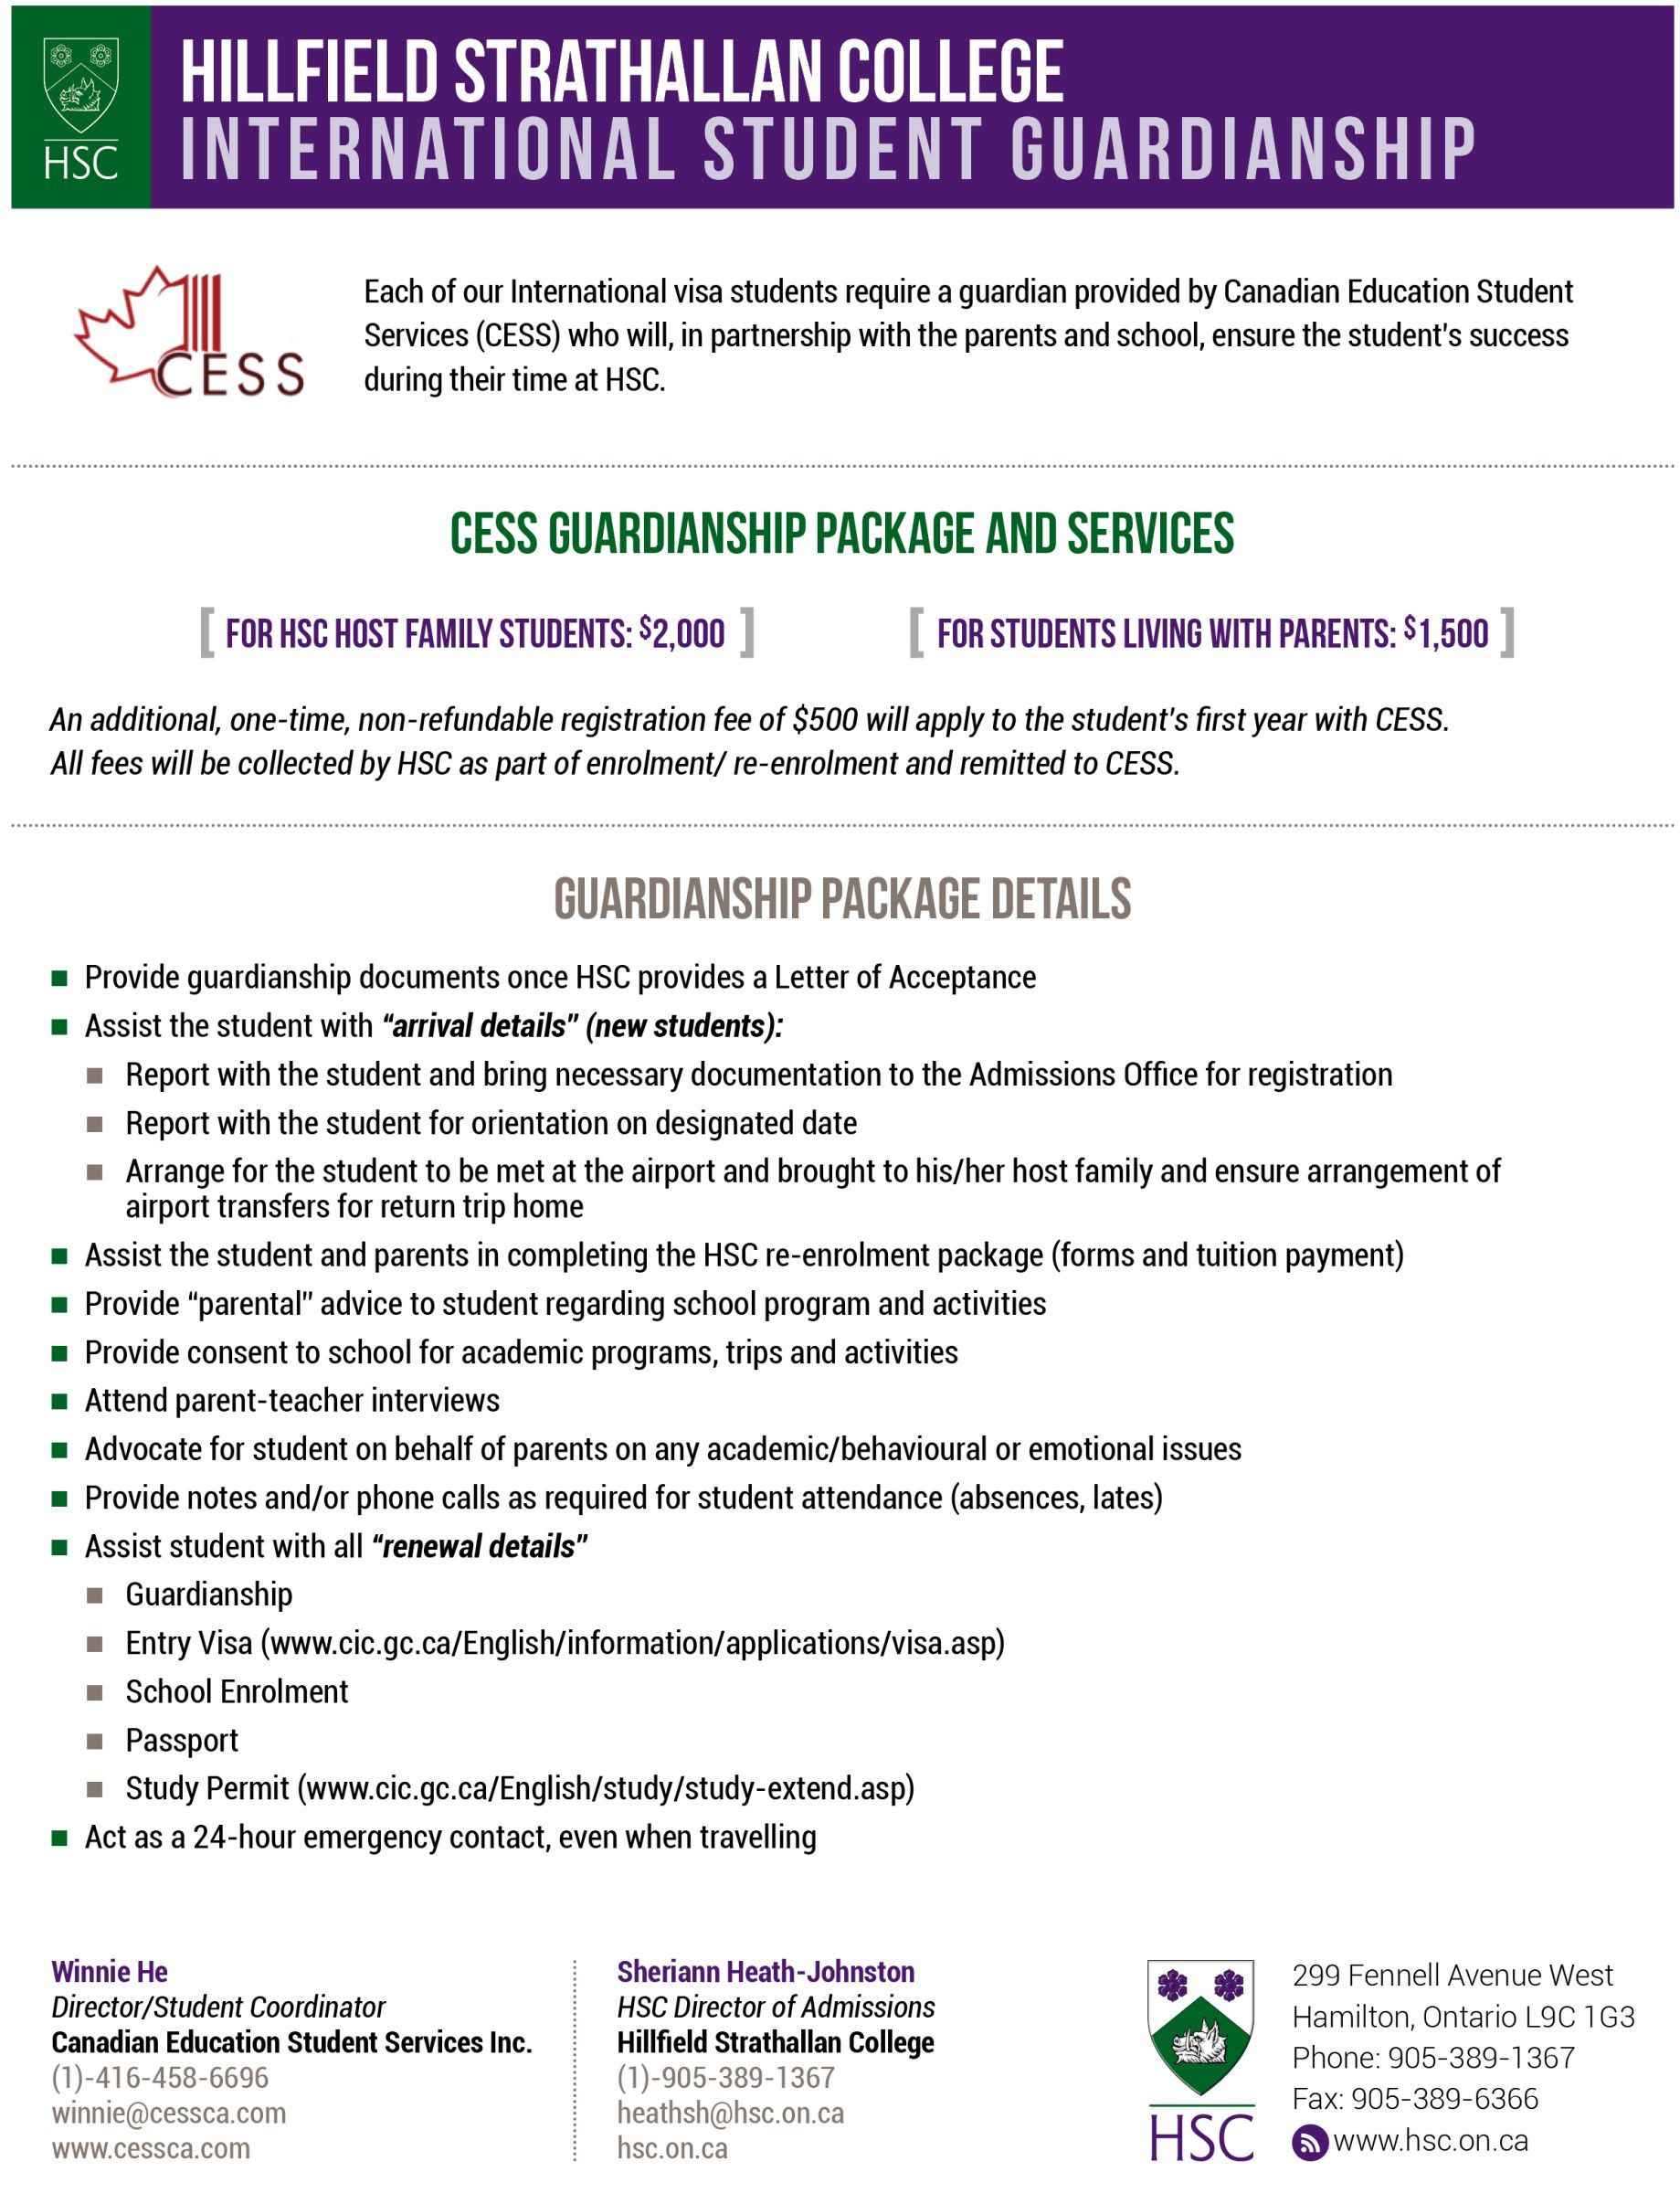 Details about the HSC International Student Guardianship Package